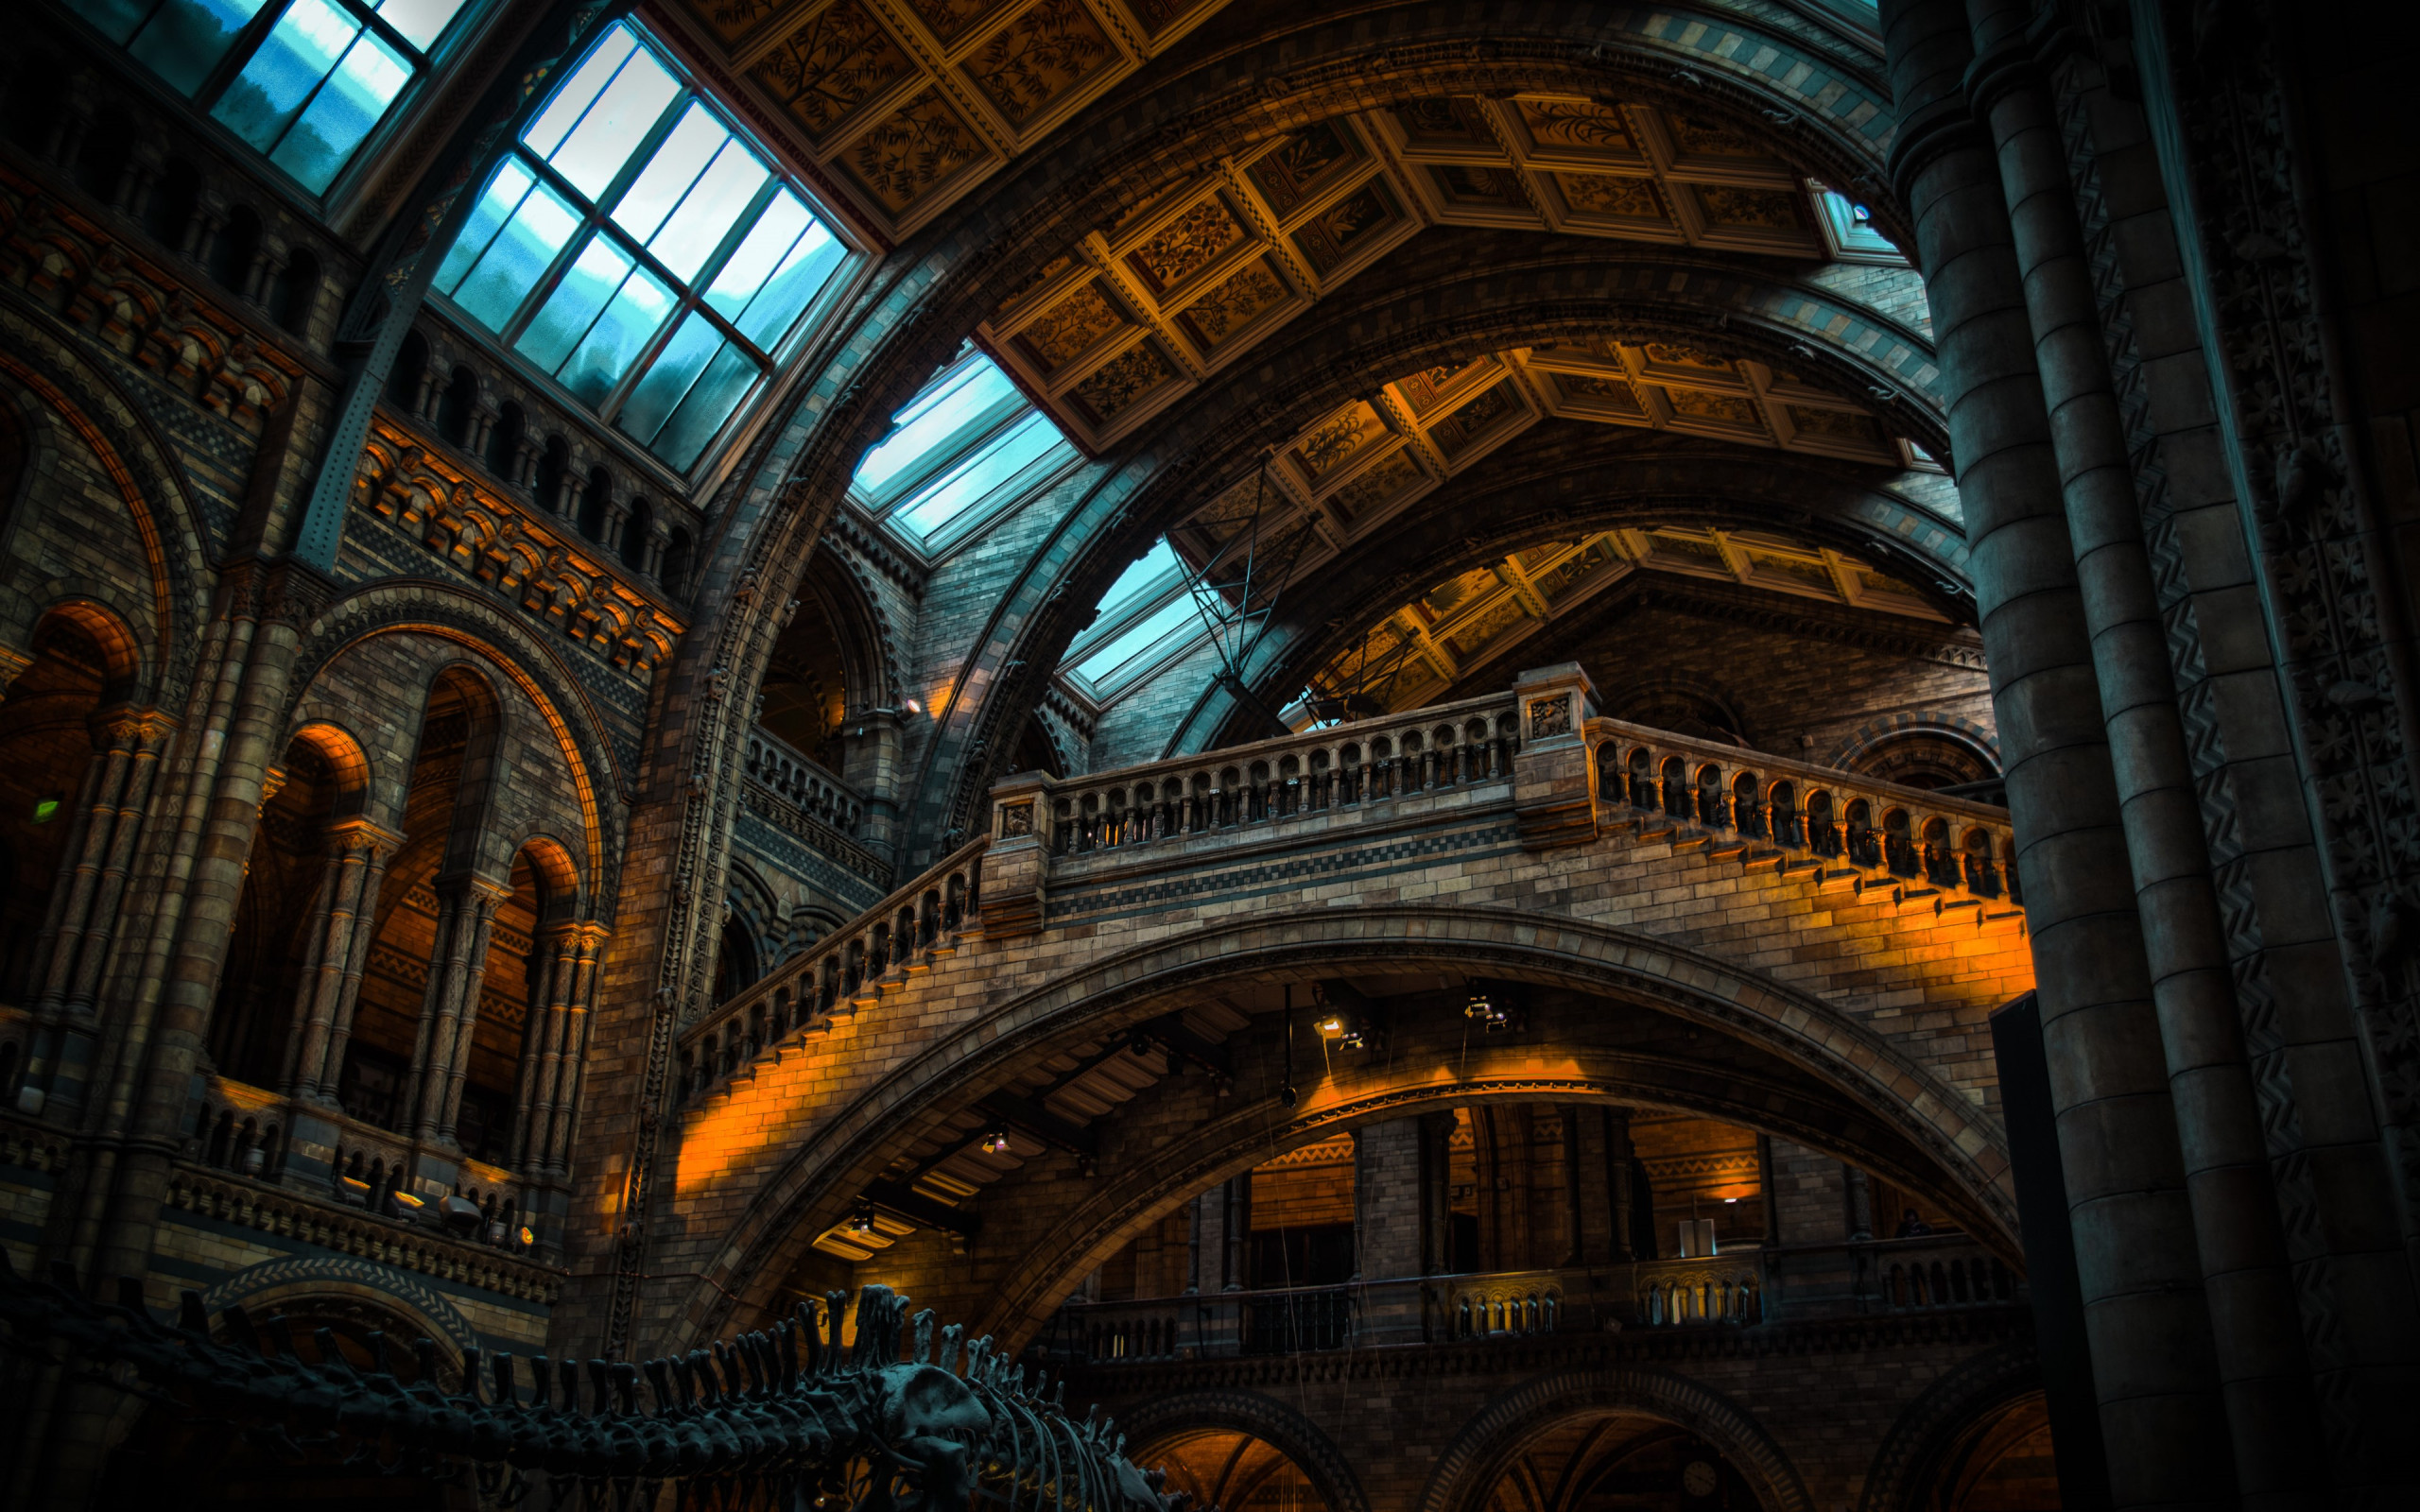 Inside of Natural History Museum from London | 2560x1600 wallpaper